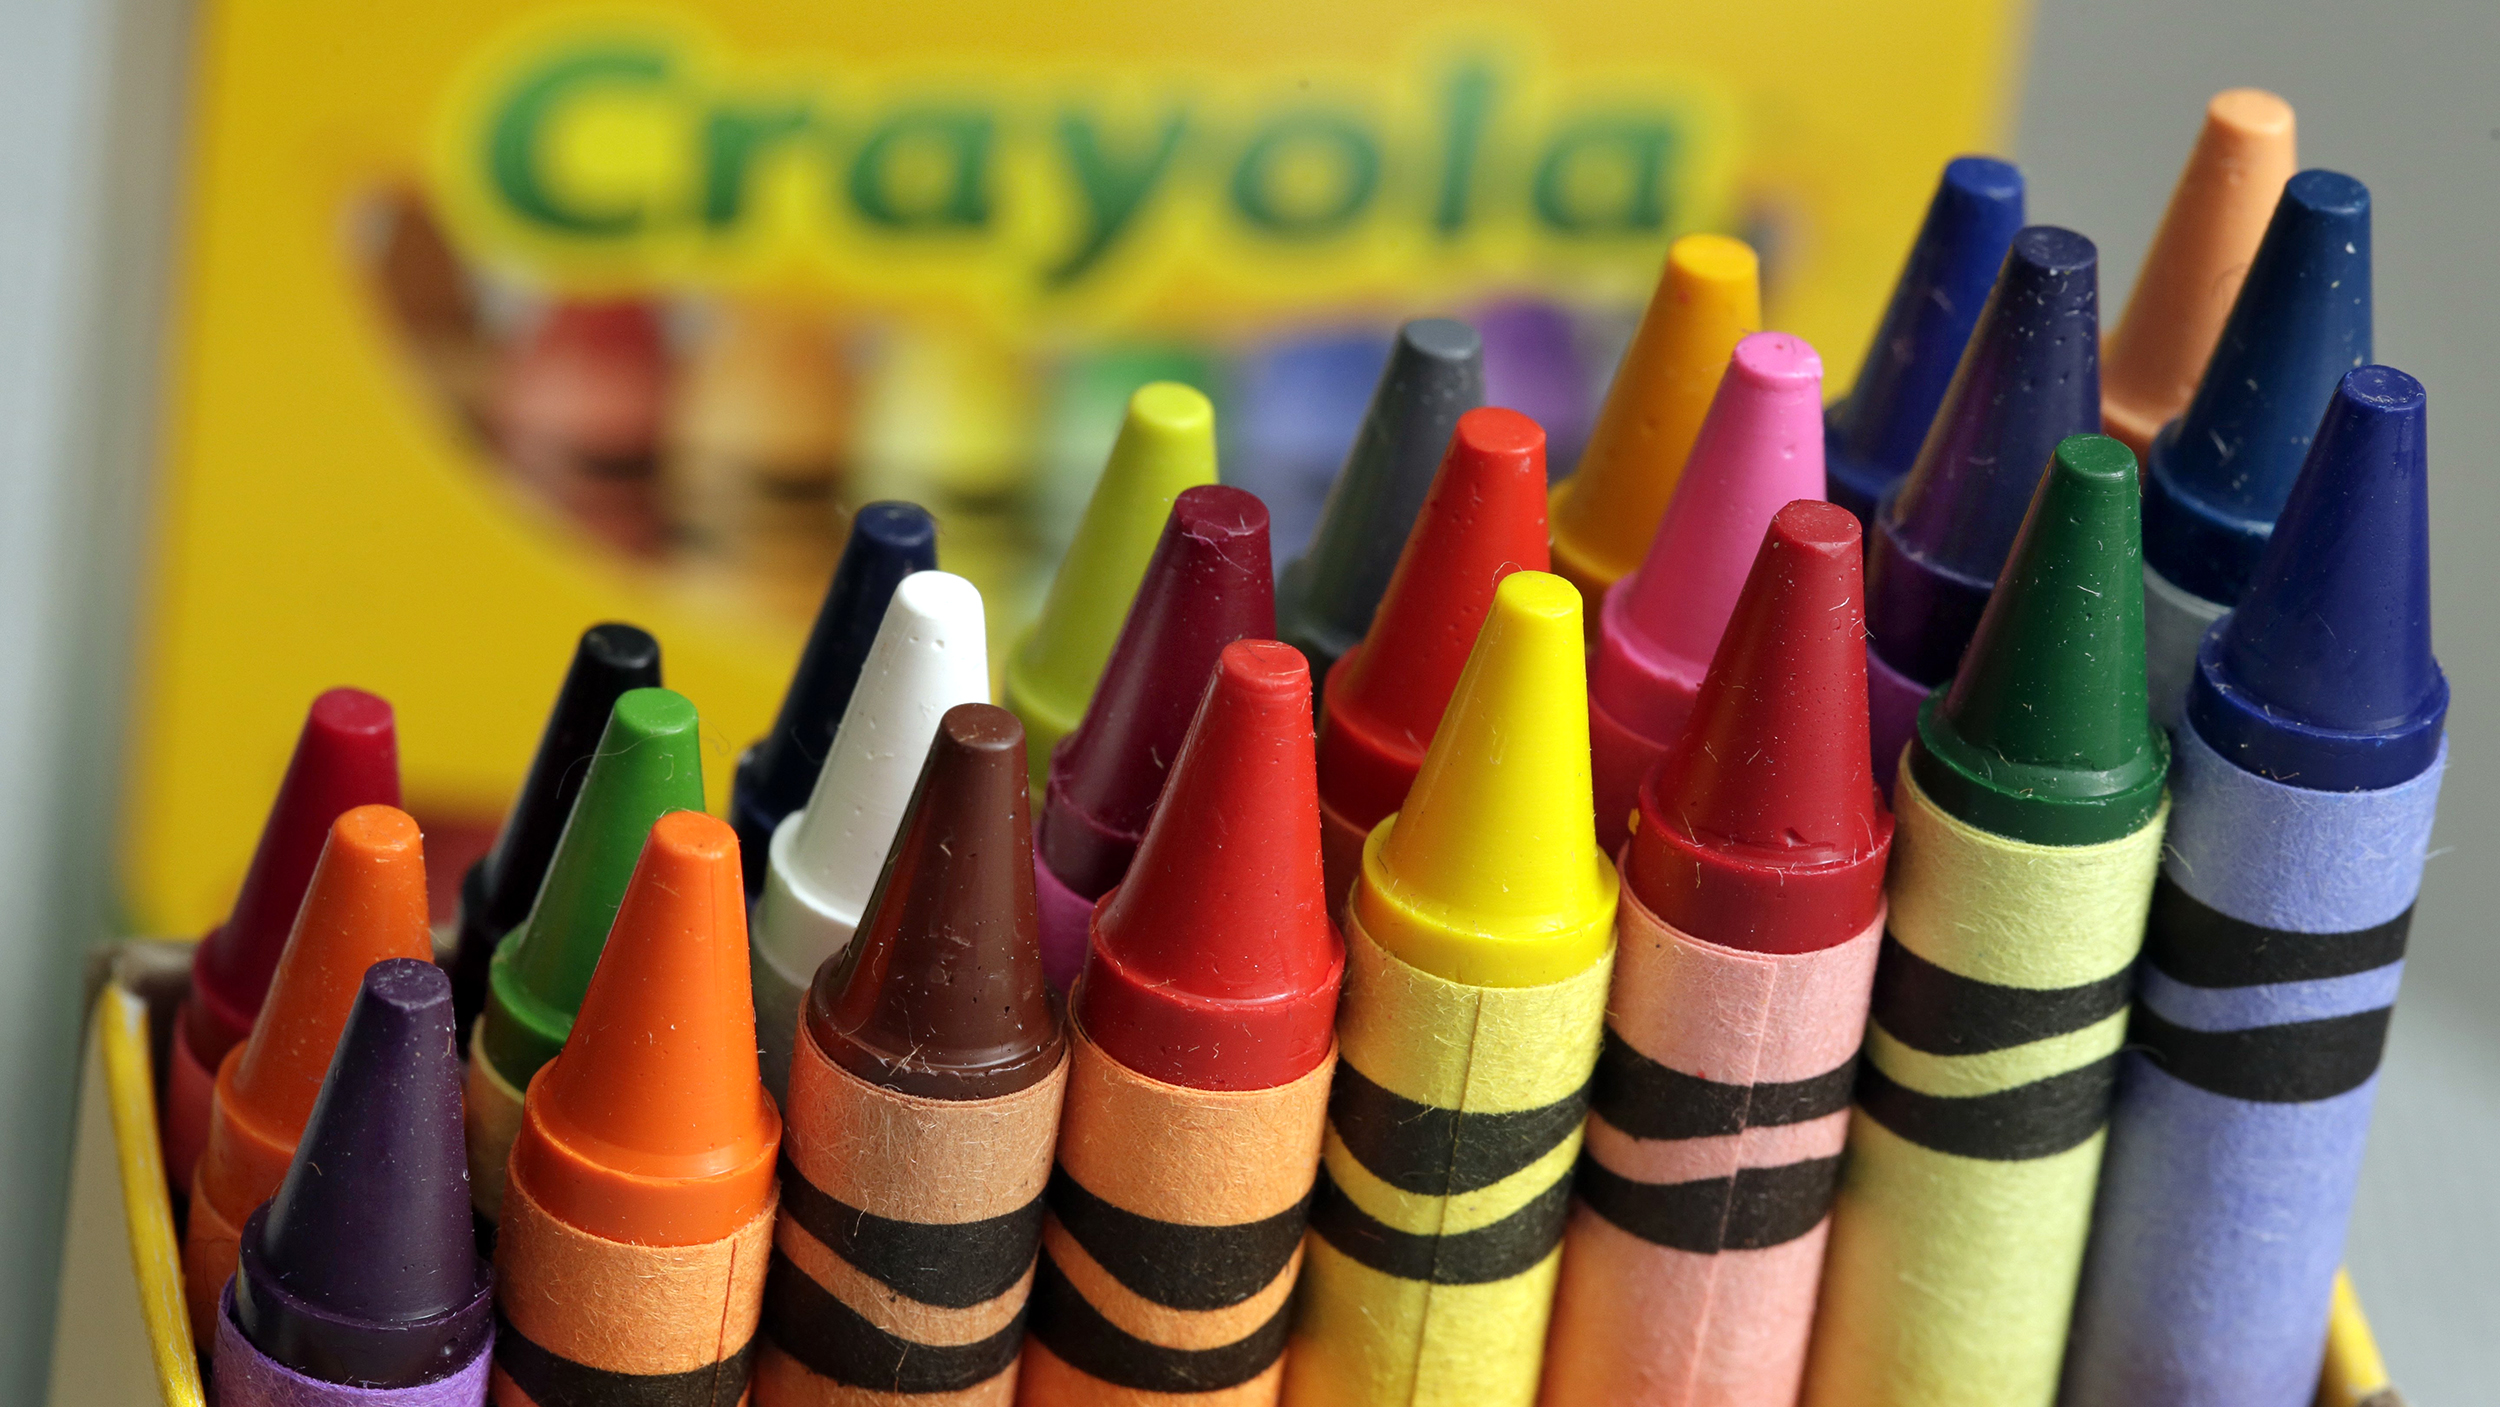 crayola announces it will retire dandelion from its iconic pack of crayons todaycom - Crayola Crayons Pictures